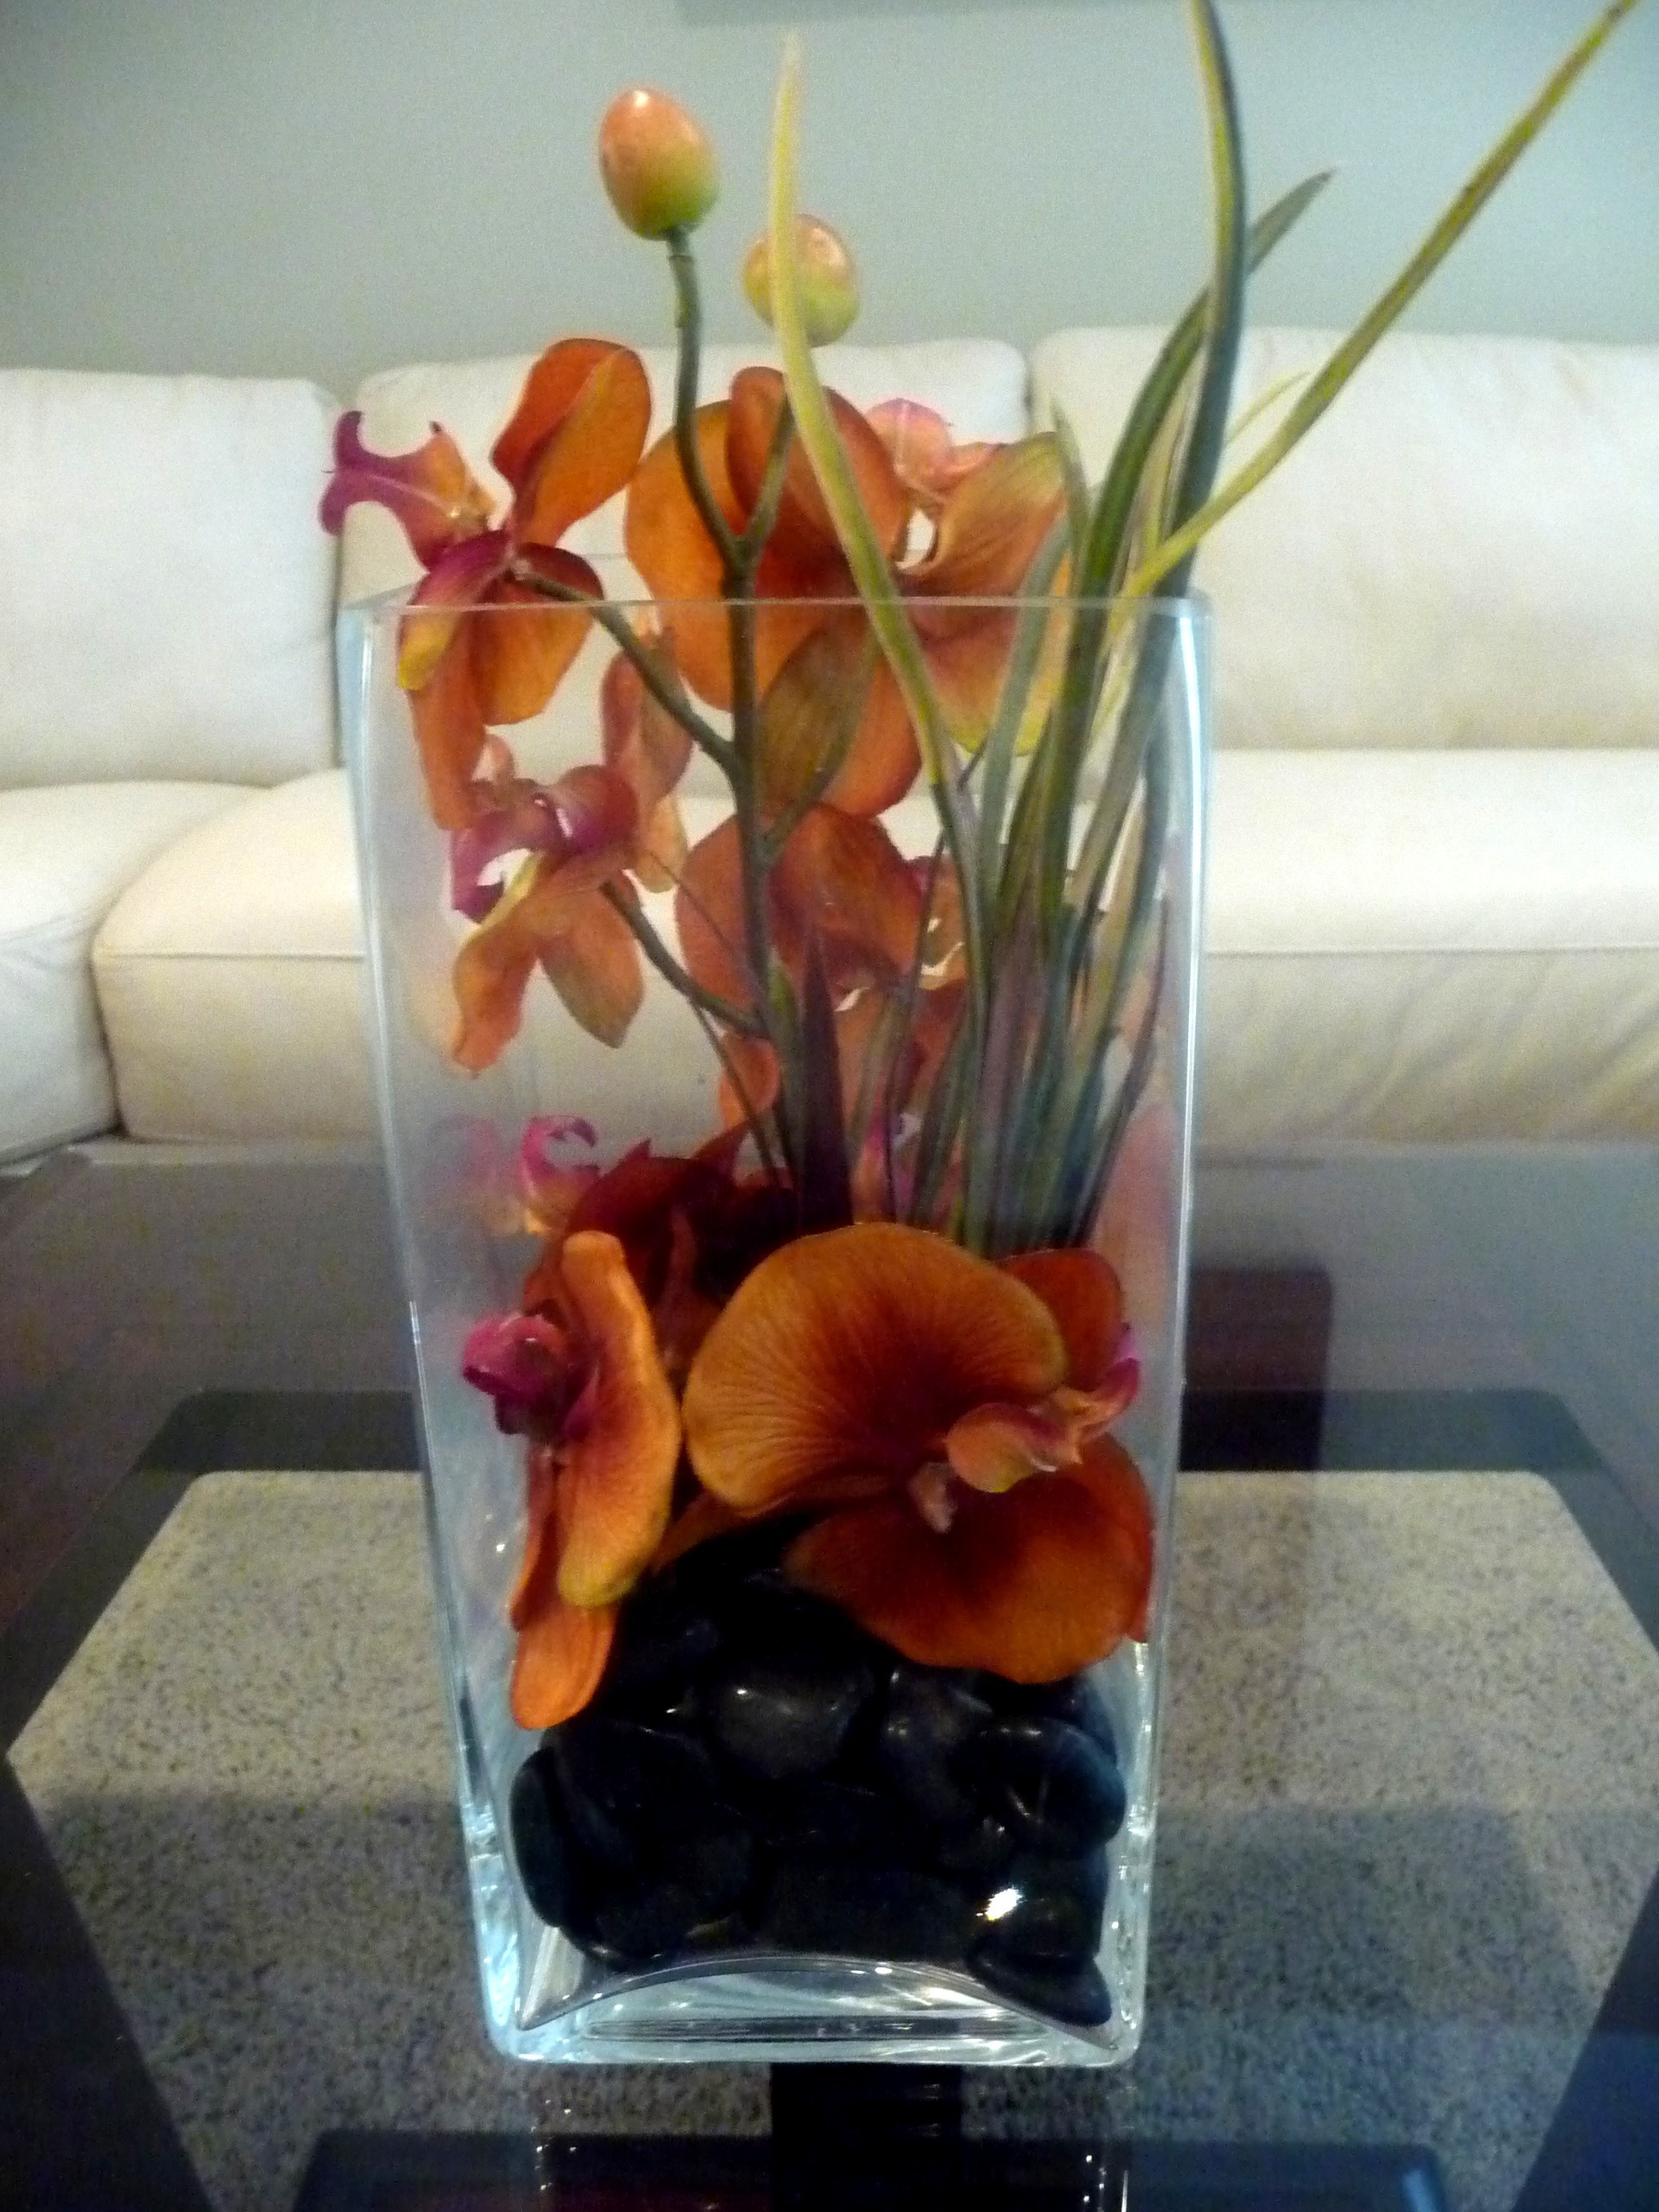 Ceremony, Inspiration, Reception, Flowers & Decor, orange, black, Ceremony Flowers, Centerpieces, Flowers, Centerpiece, Tropical, Vase, Orchids, Board, Glass, Burnt, Flavor, Savannah event decor